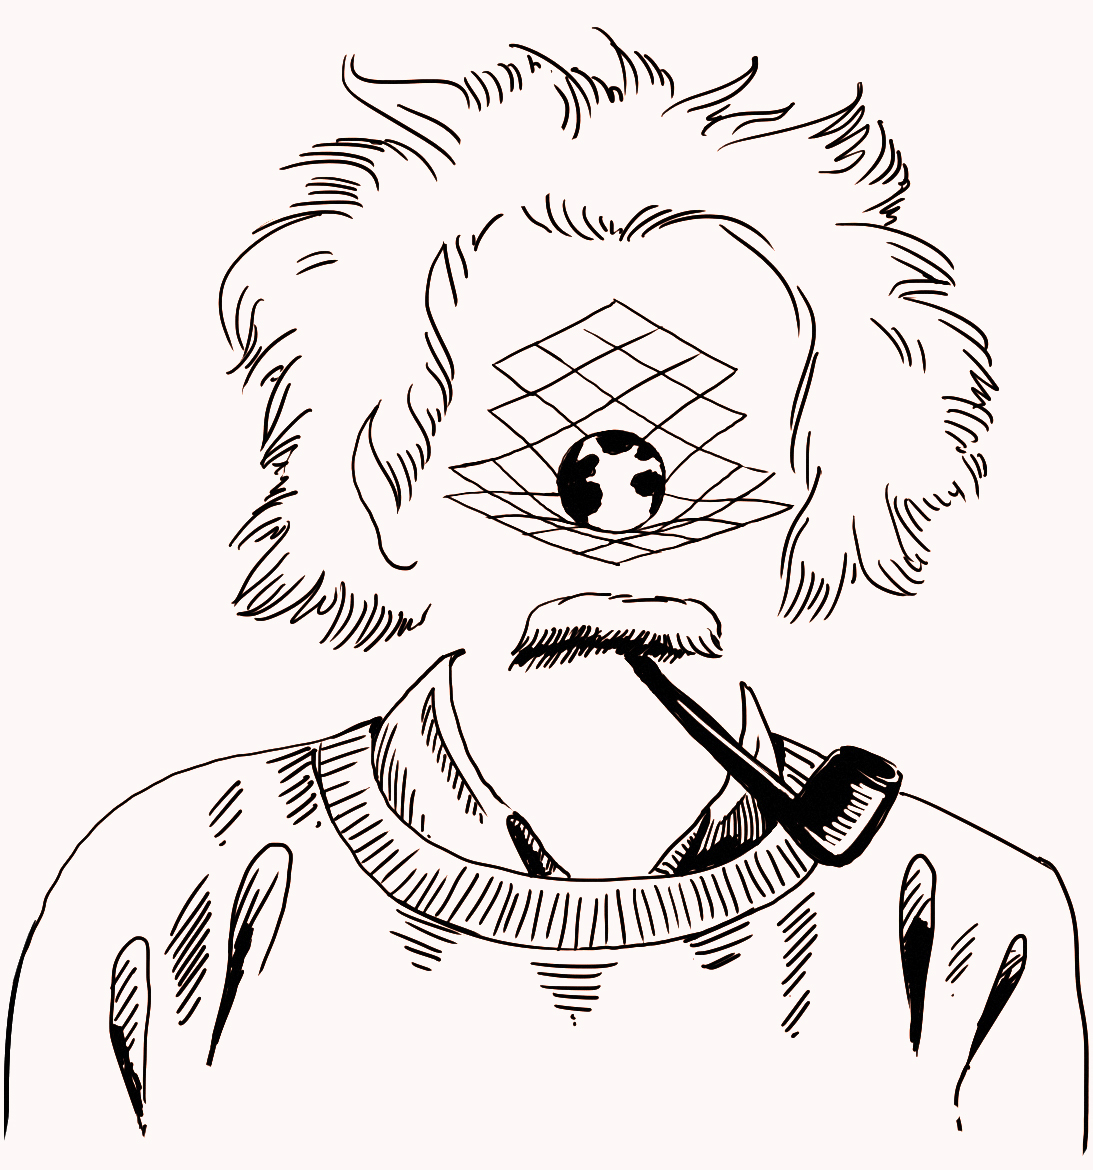 Illustration of Albert Einstein with gravitational waves over face